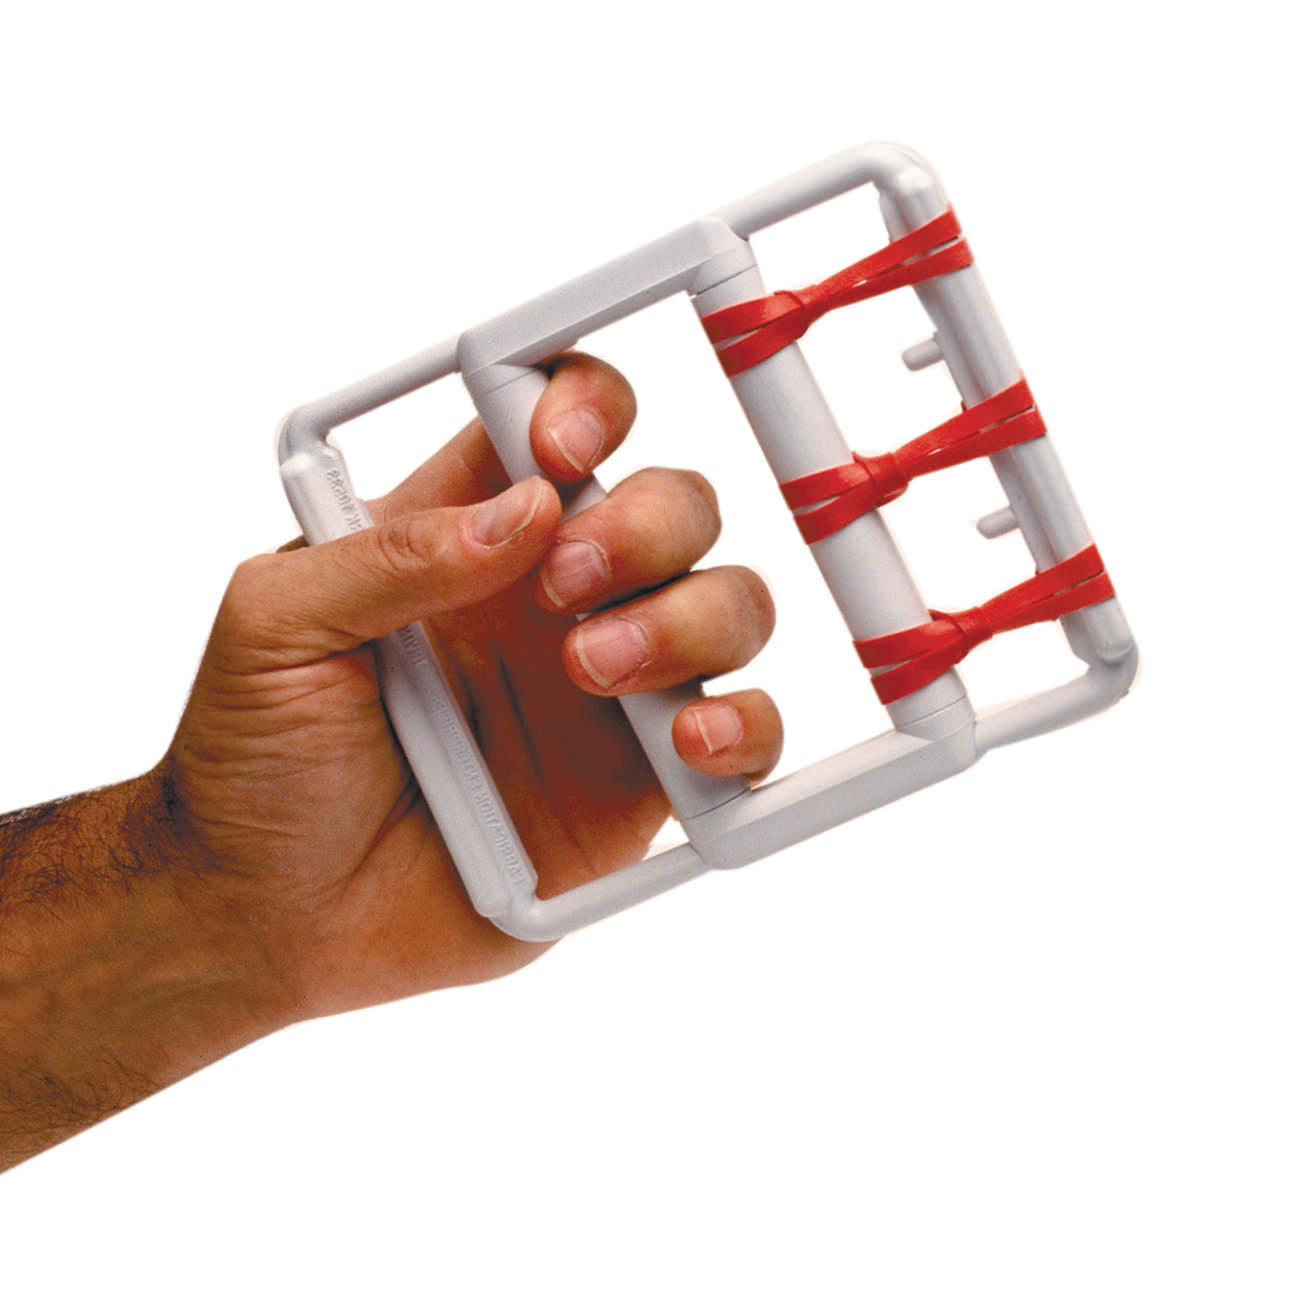 CanDo® Adjustable Rubber-Band Hand Exerciser, with 5 Red Bands